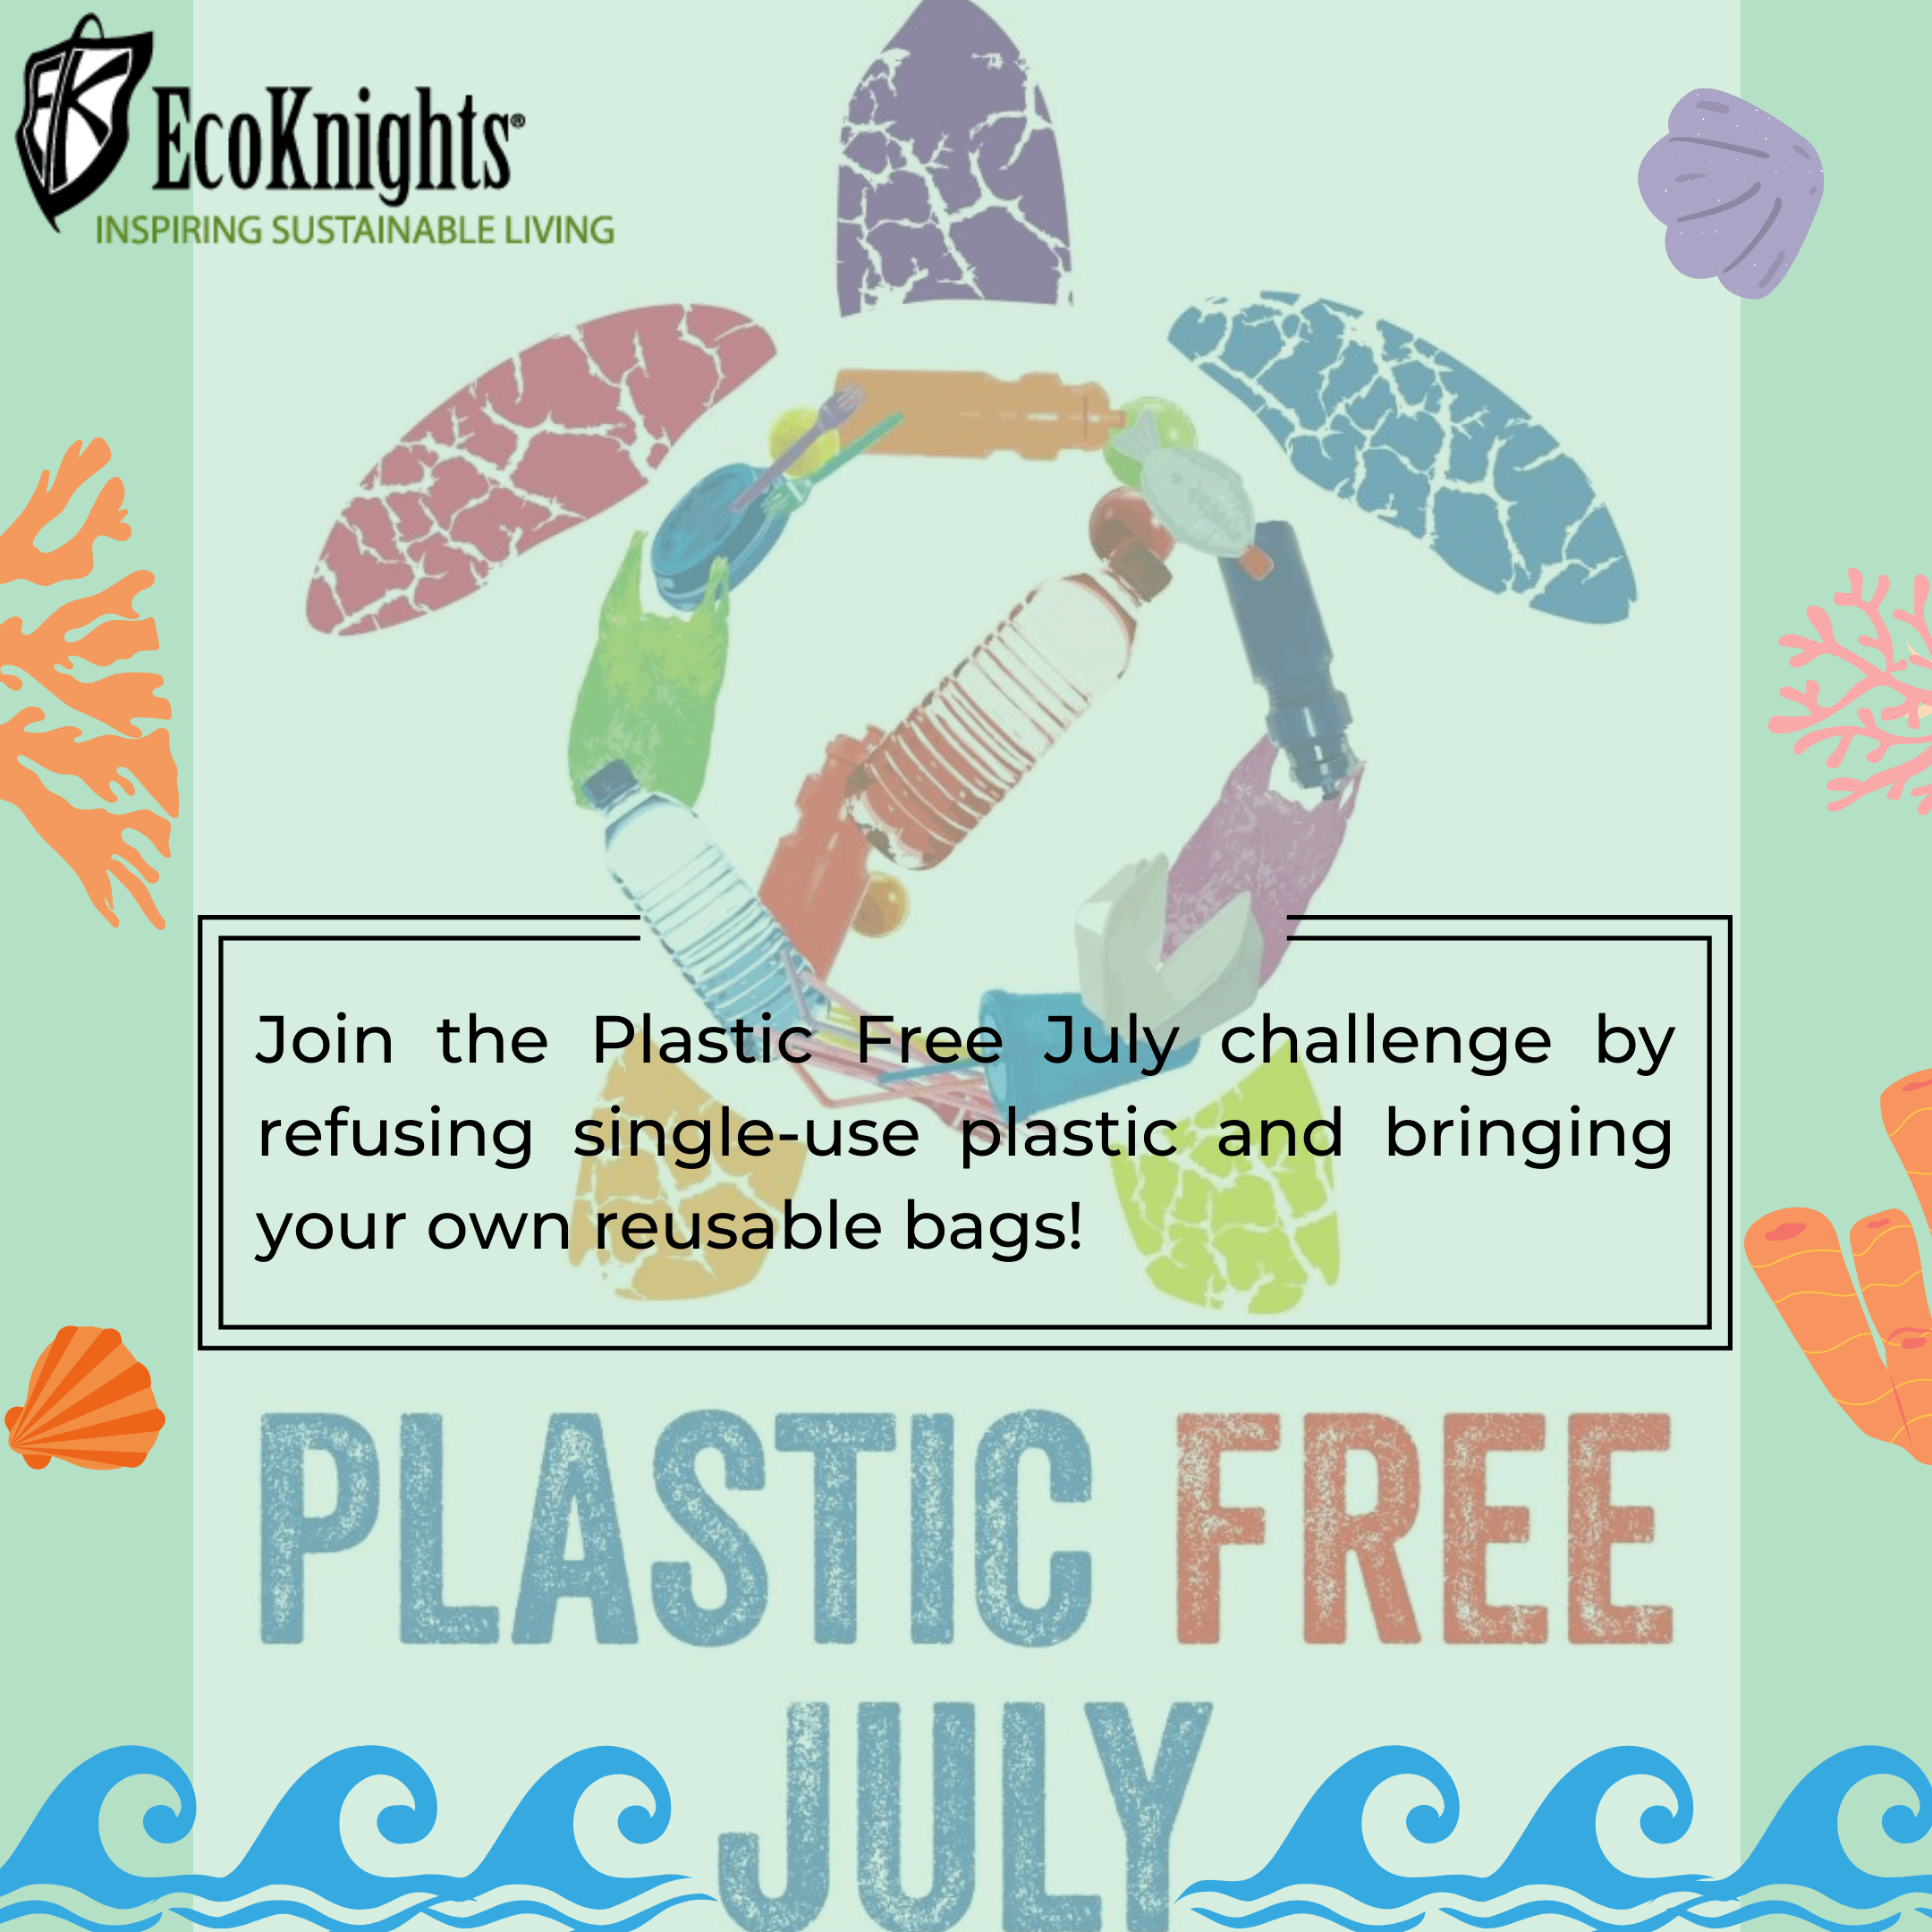 It's Plastic Free July!